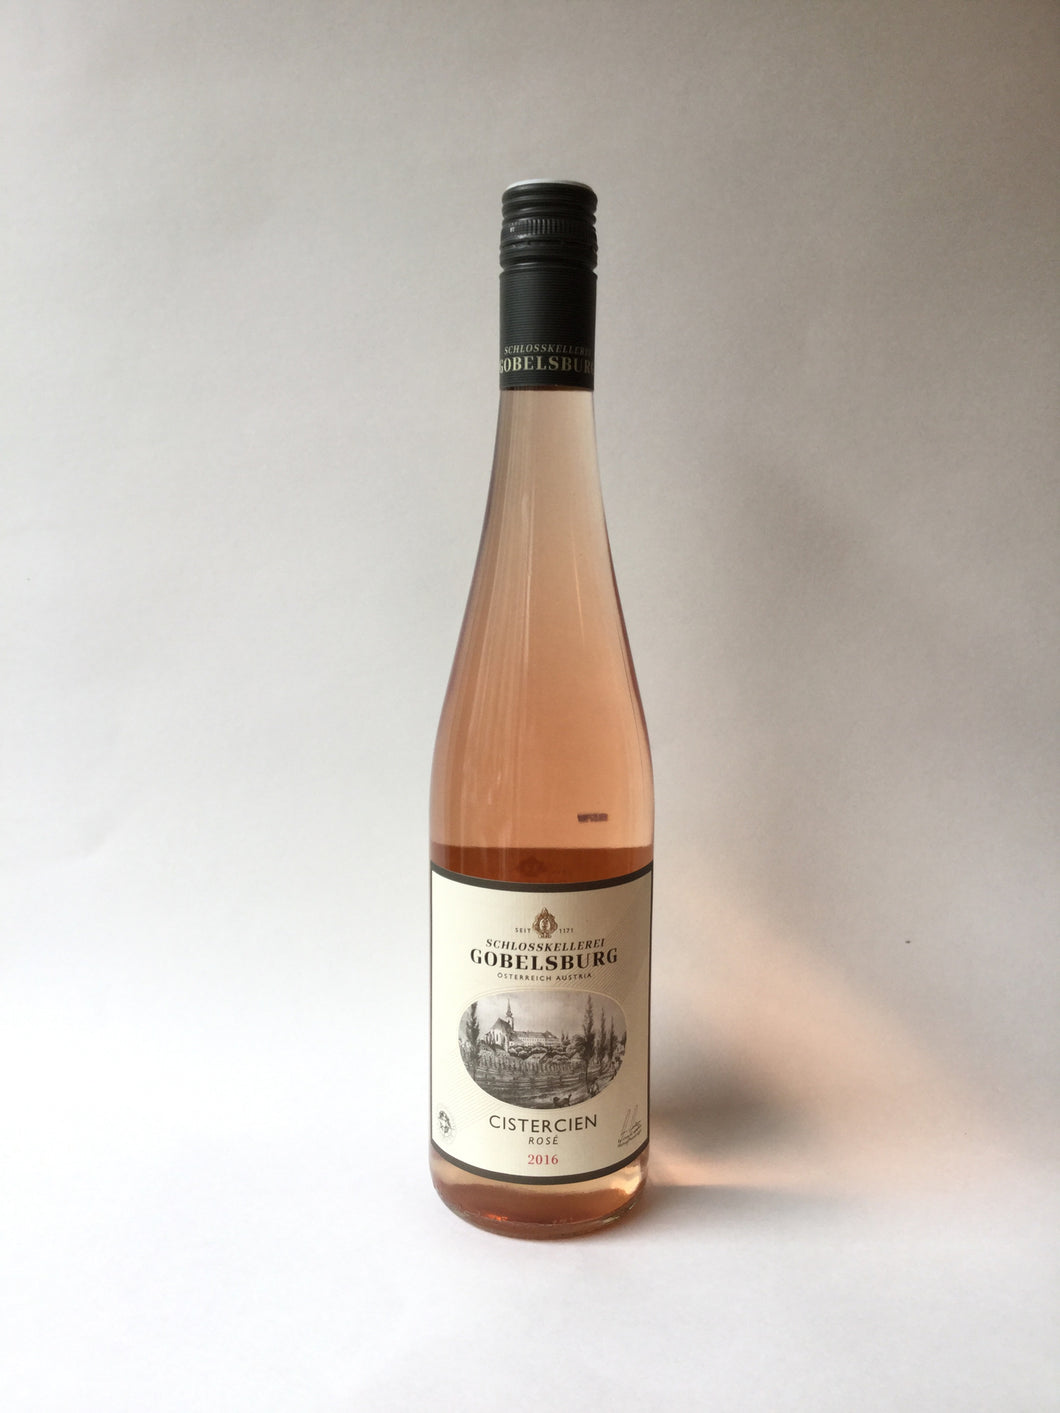 Schloss Gobelsburg Cistercien Rose 2016, 750ml - Frankly Wines